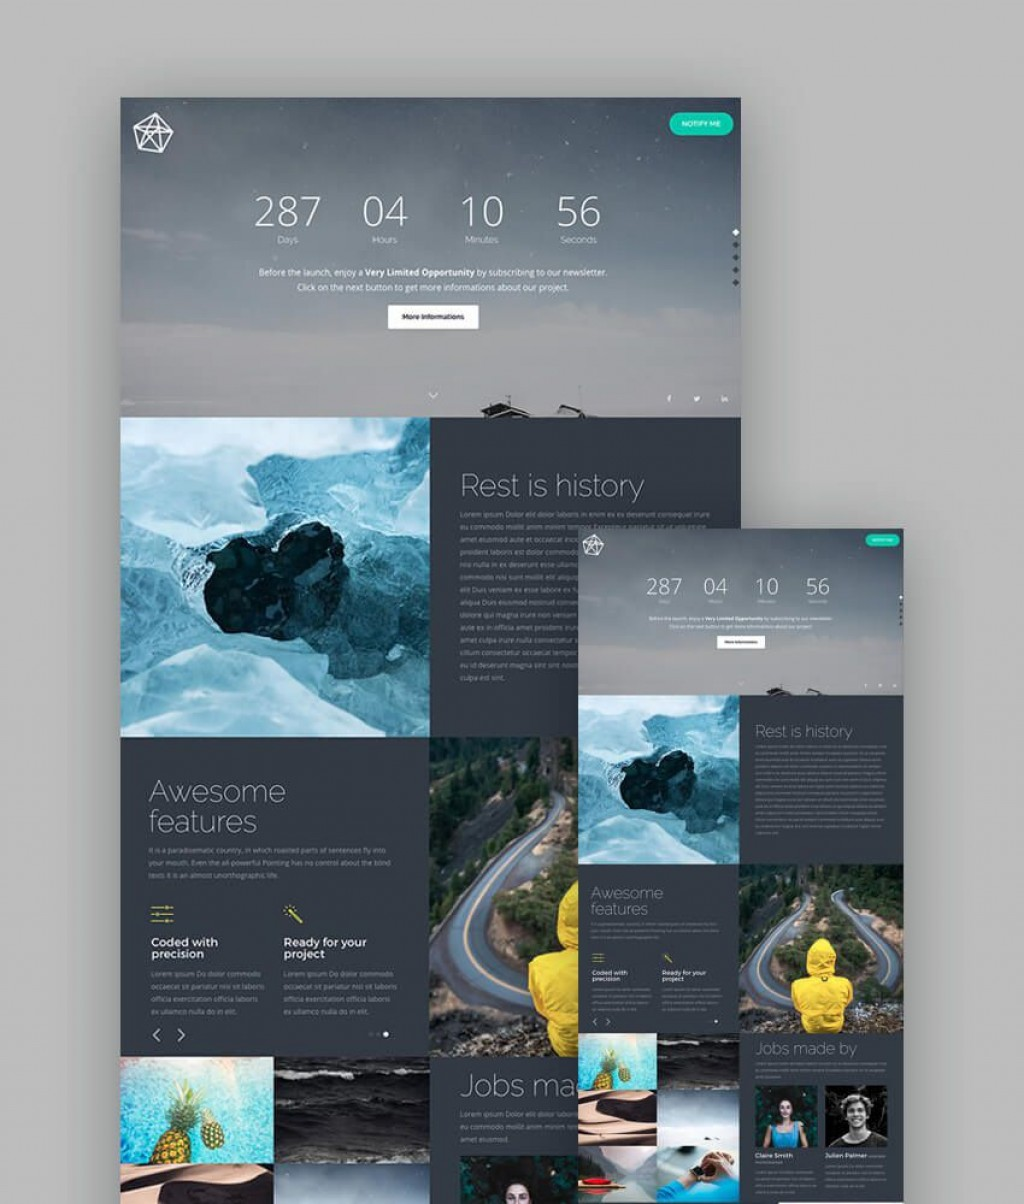 006 Frightening Responsive Landing Page Template High Definition  Templates Html5 Free Download Wordpres HtmlLarge